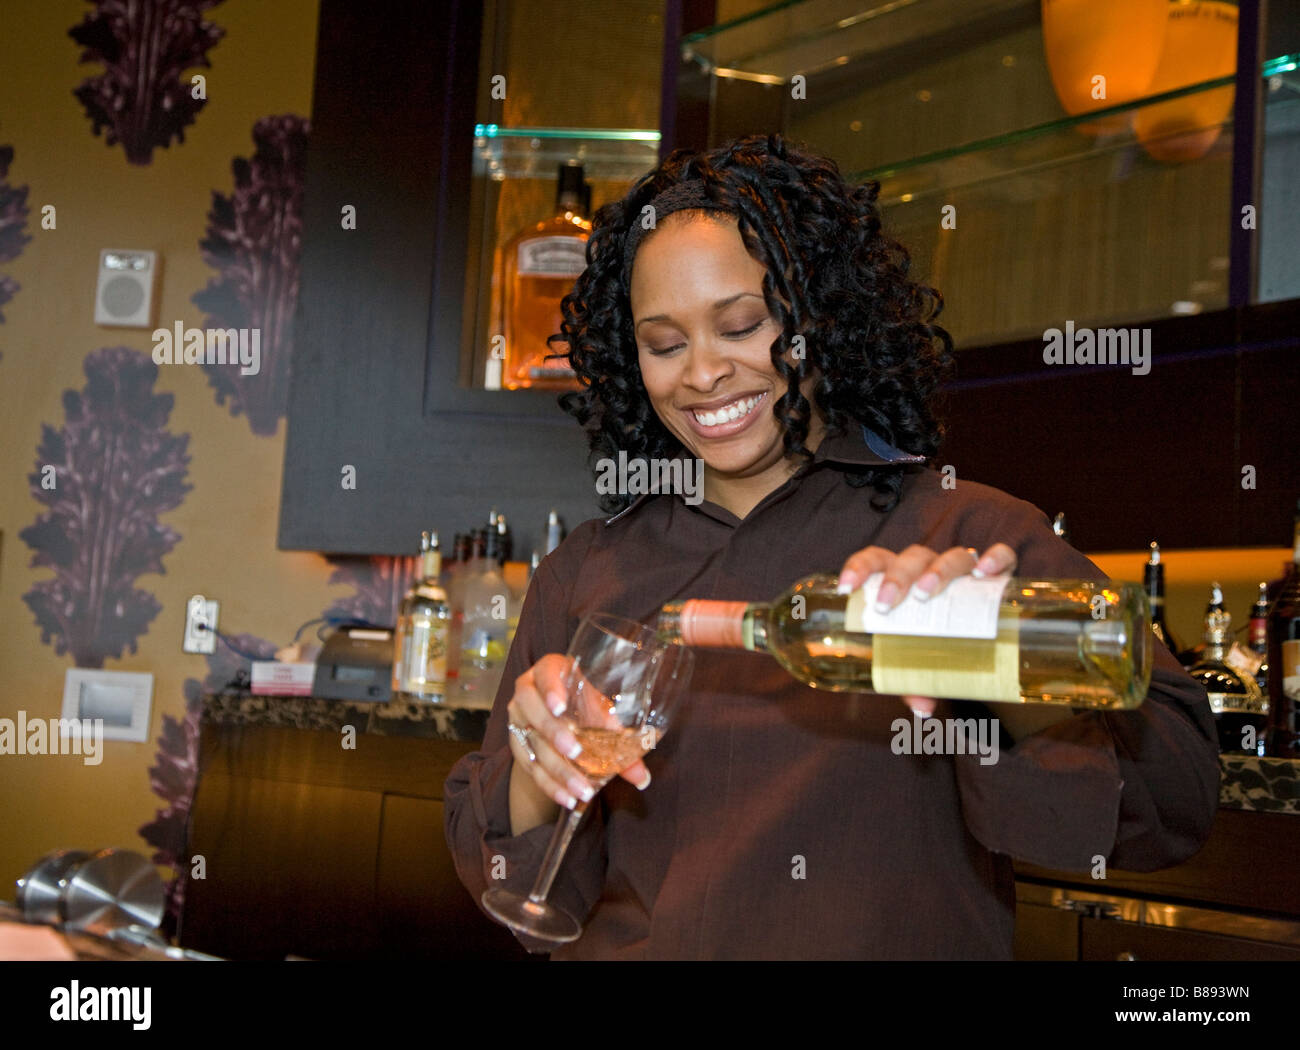 Detroit Michigan A bartender pours a glass of wine at the Bistro 555 restaurant in the Greektown Casino Hotel - Stock Image